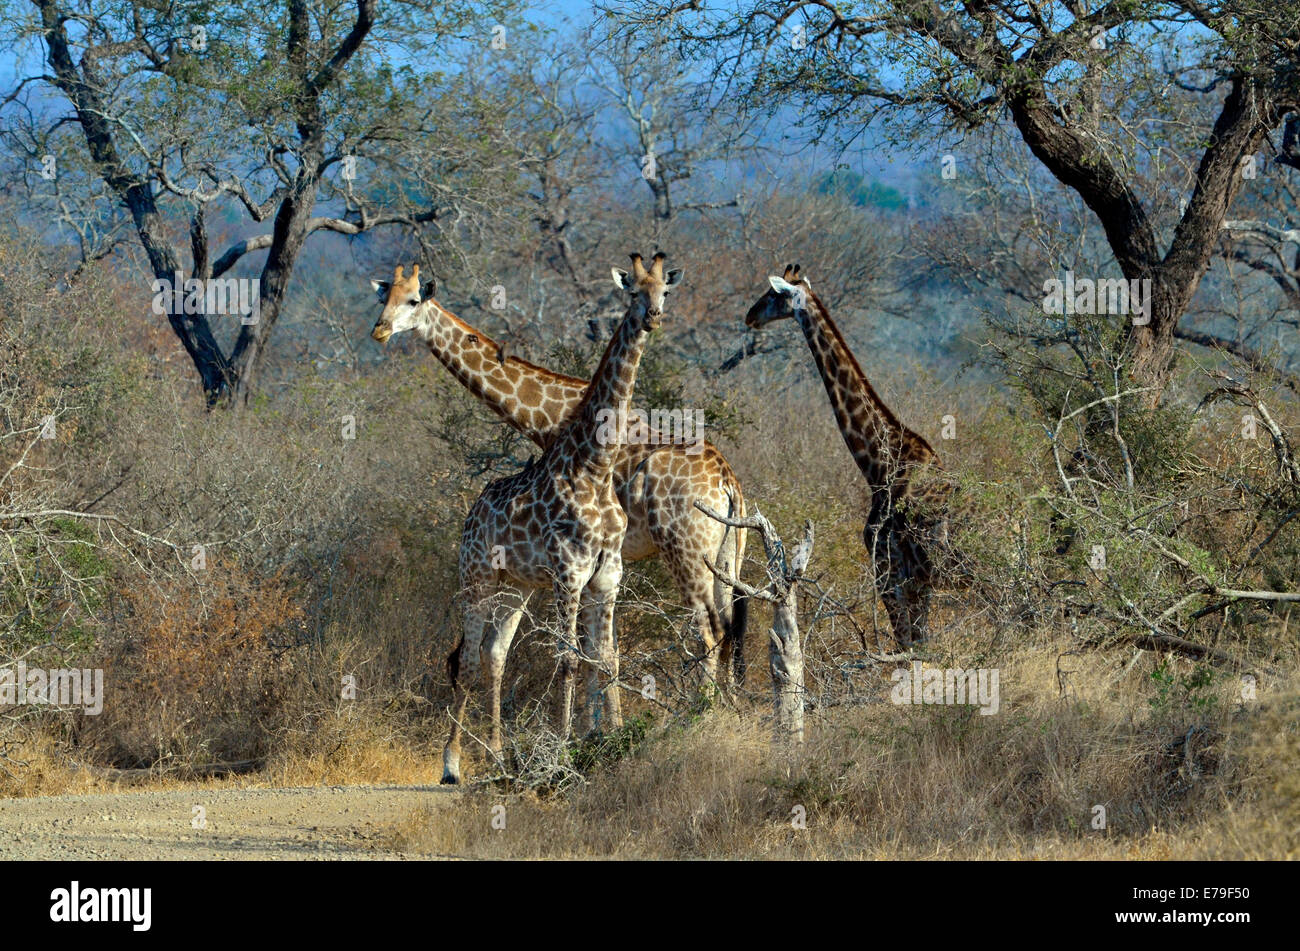 Three giraffes standing in road under tall acaia trees in Kruger Park, South Africa. - Stock Image